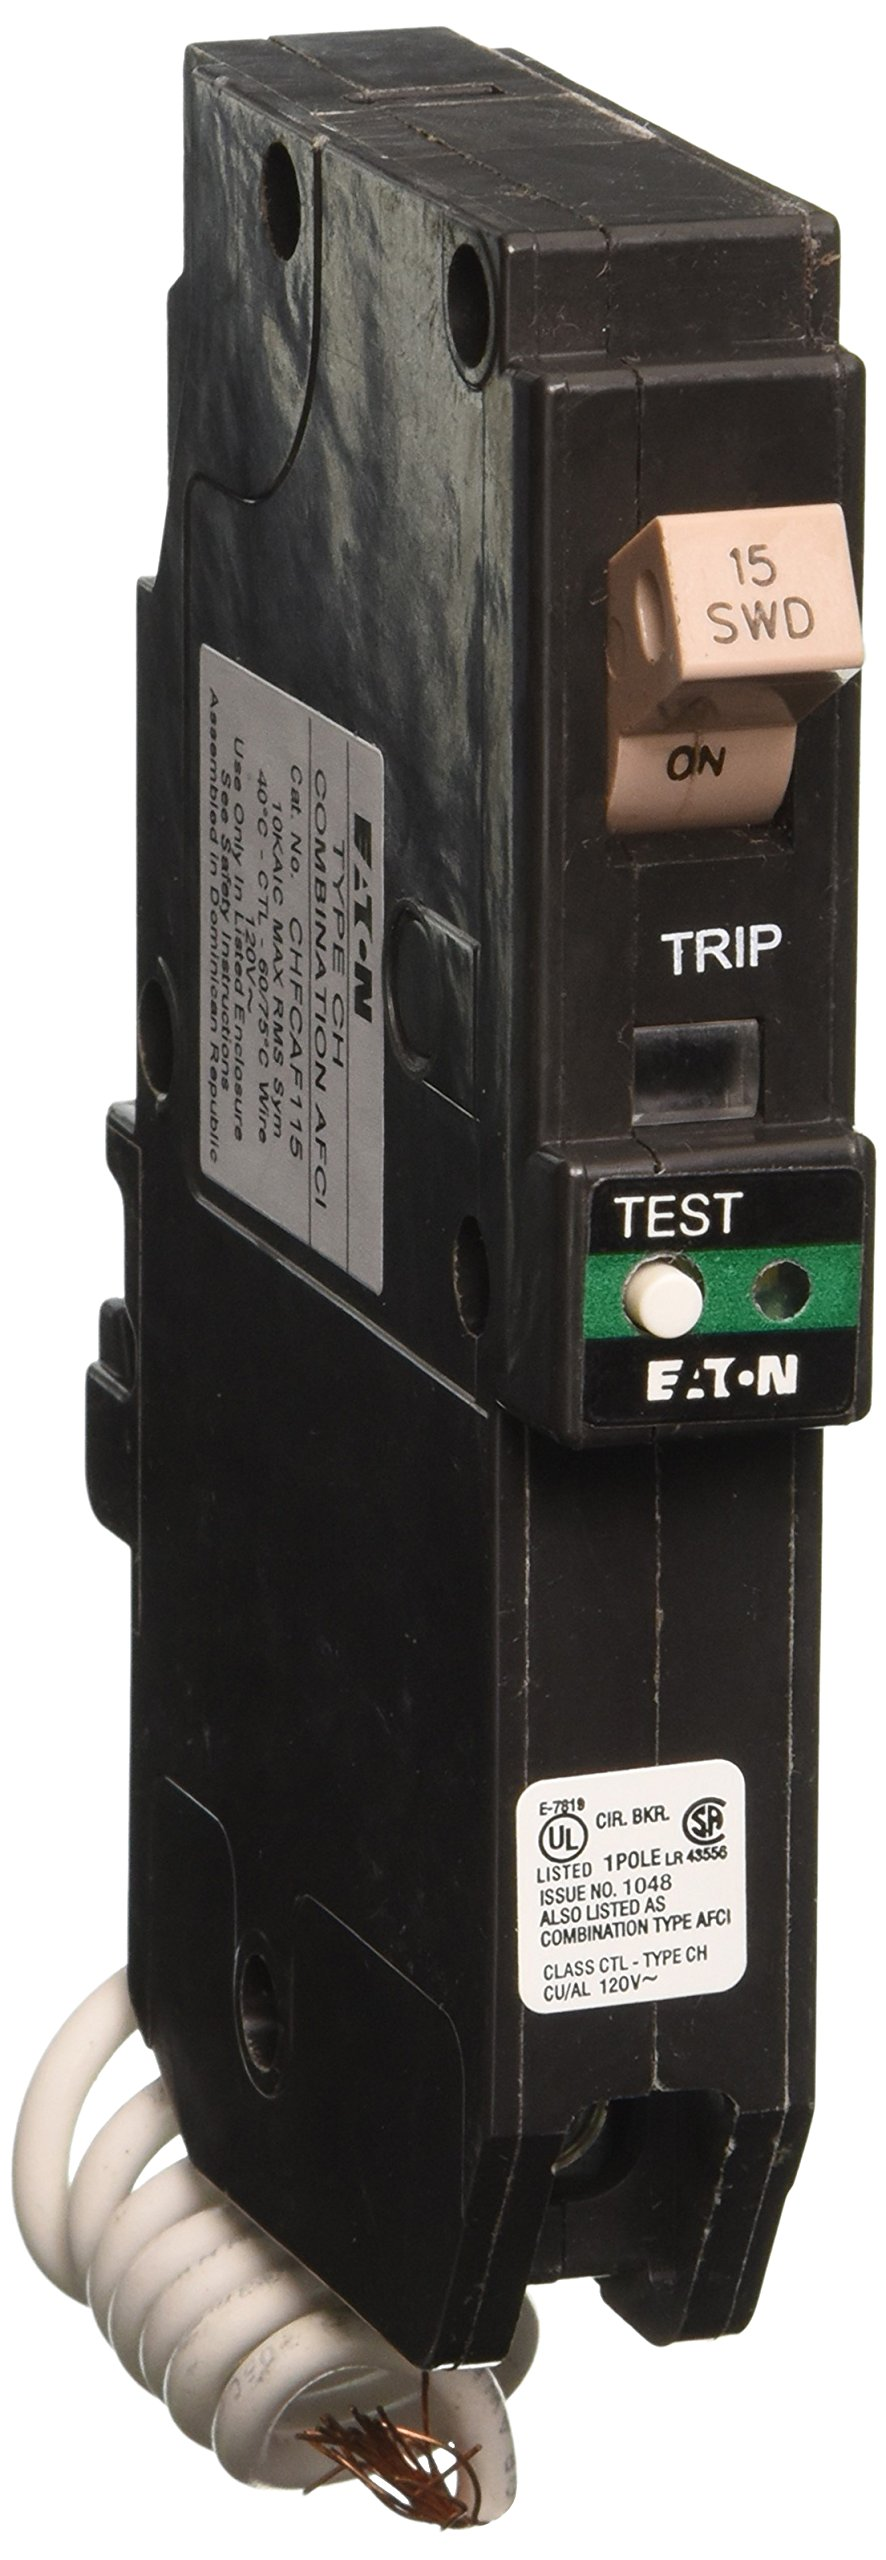 Best Rated In Arc Fault Circuit Breakers Helpful Customer Reviews Afci Fact Sheet The Is An Interrupter Eaton Corporation Chfcaf115 Single Pole Cutler Hammer Combo Breaker 15 Amp